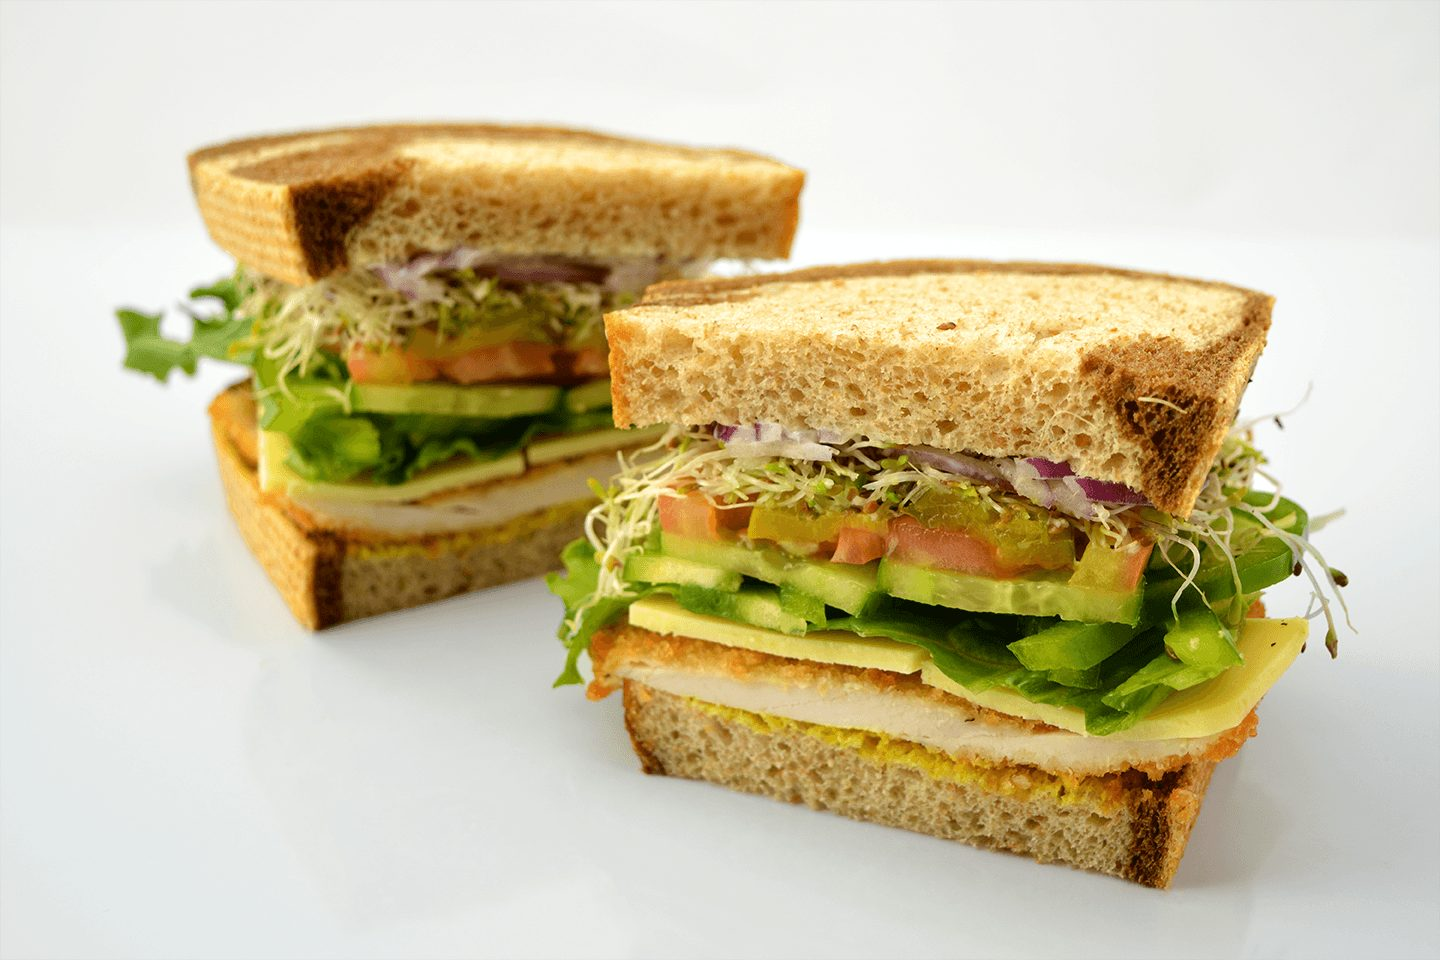 Beautiful sandwich cut from the middle